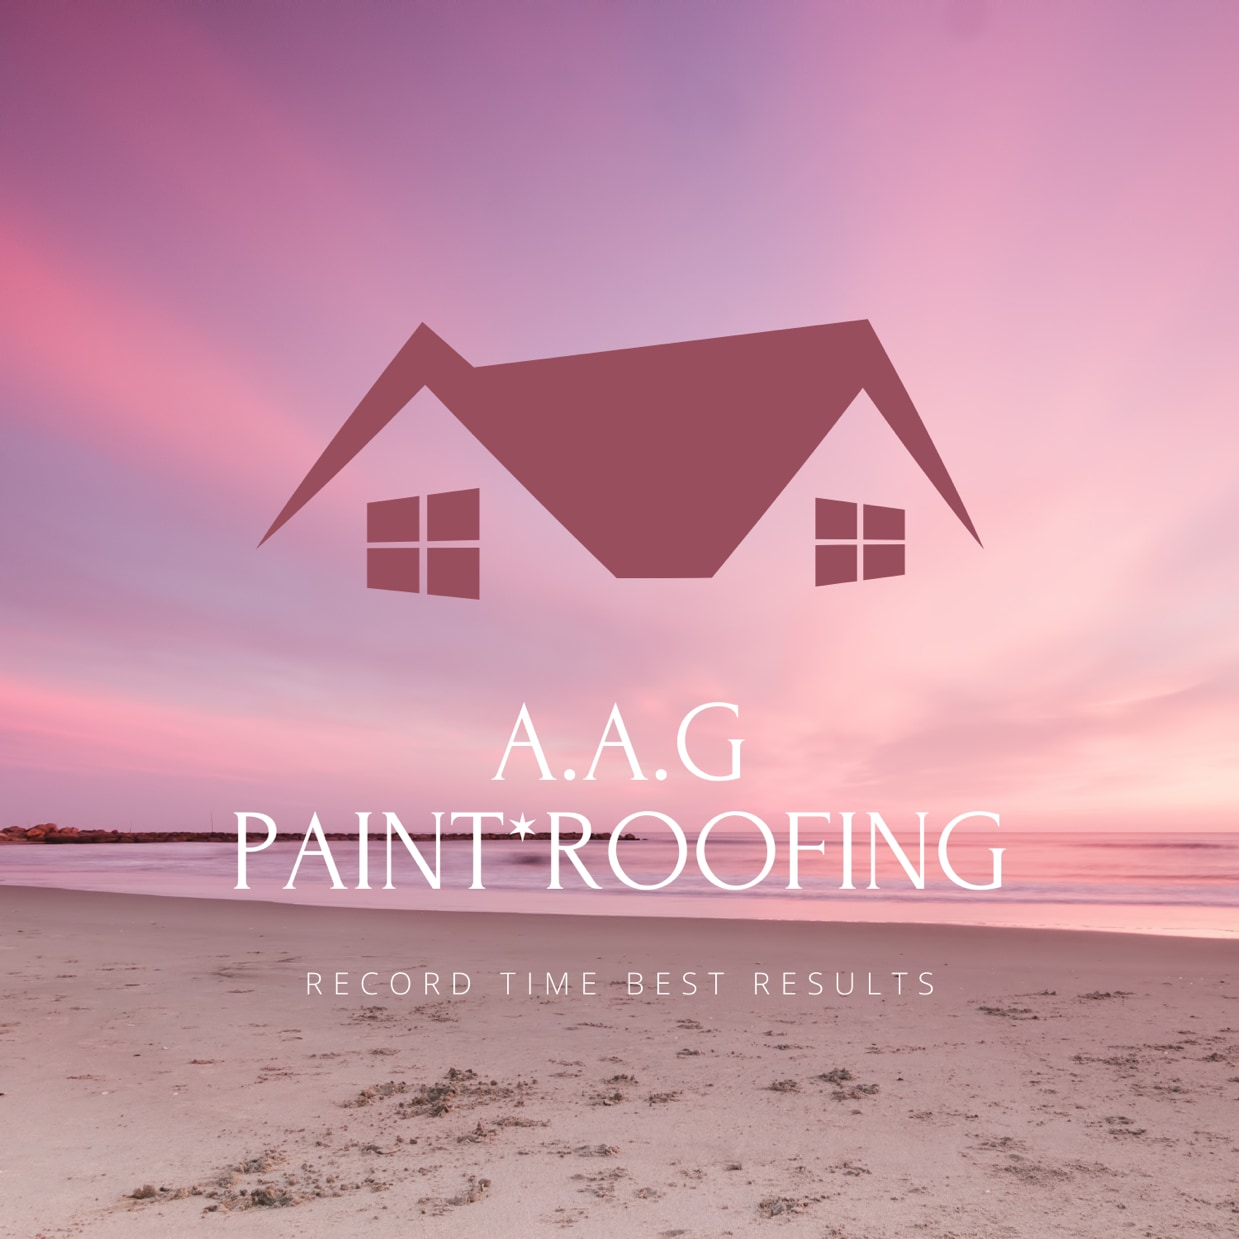 A.A.G Painting And Roofing